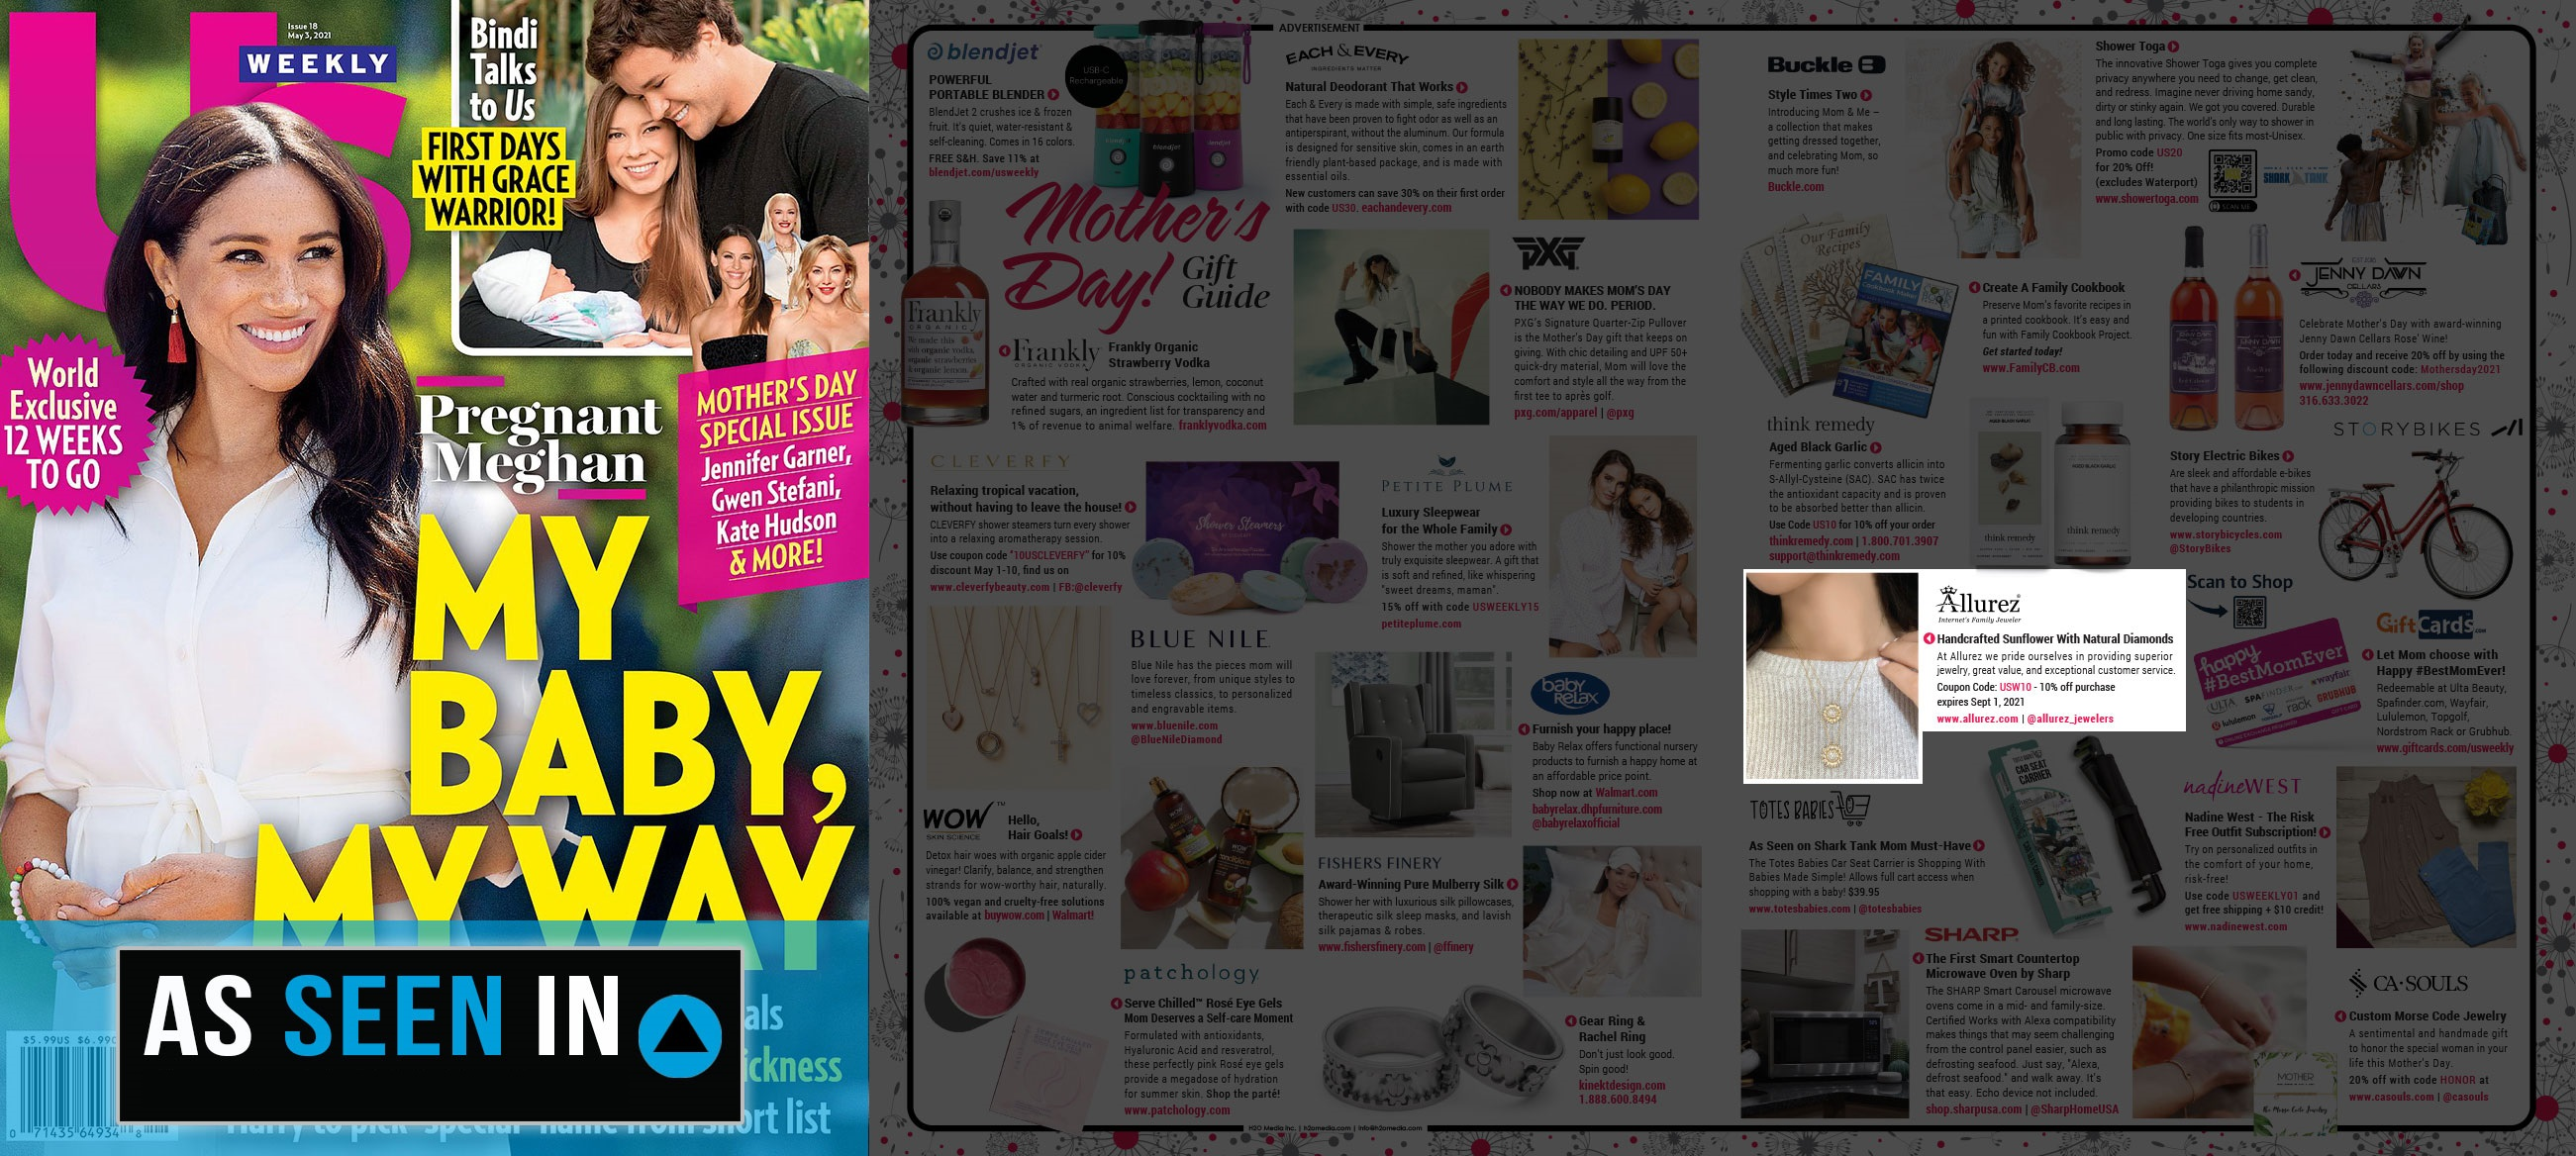 US Weekly Magazine Issue 18 May 3,2021